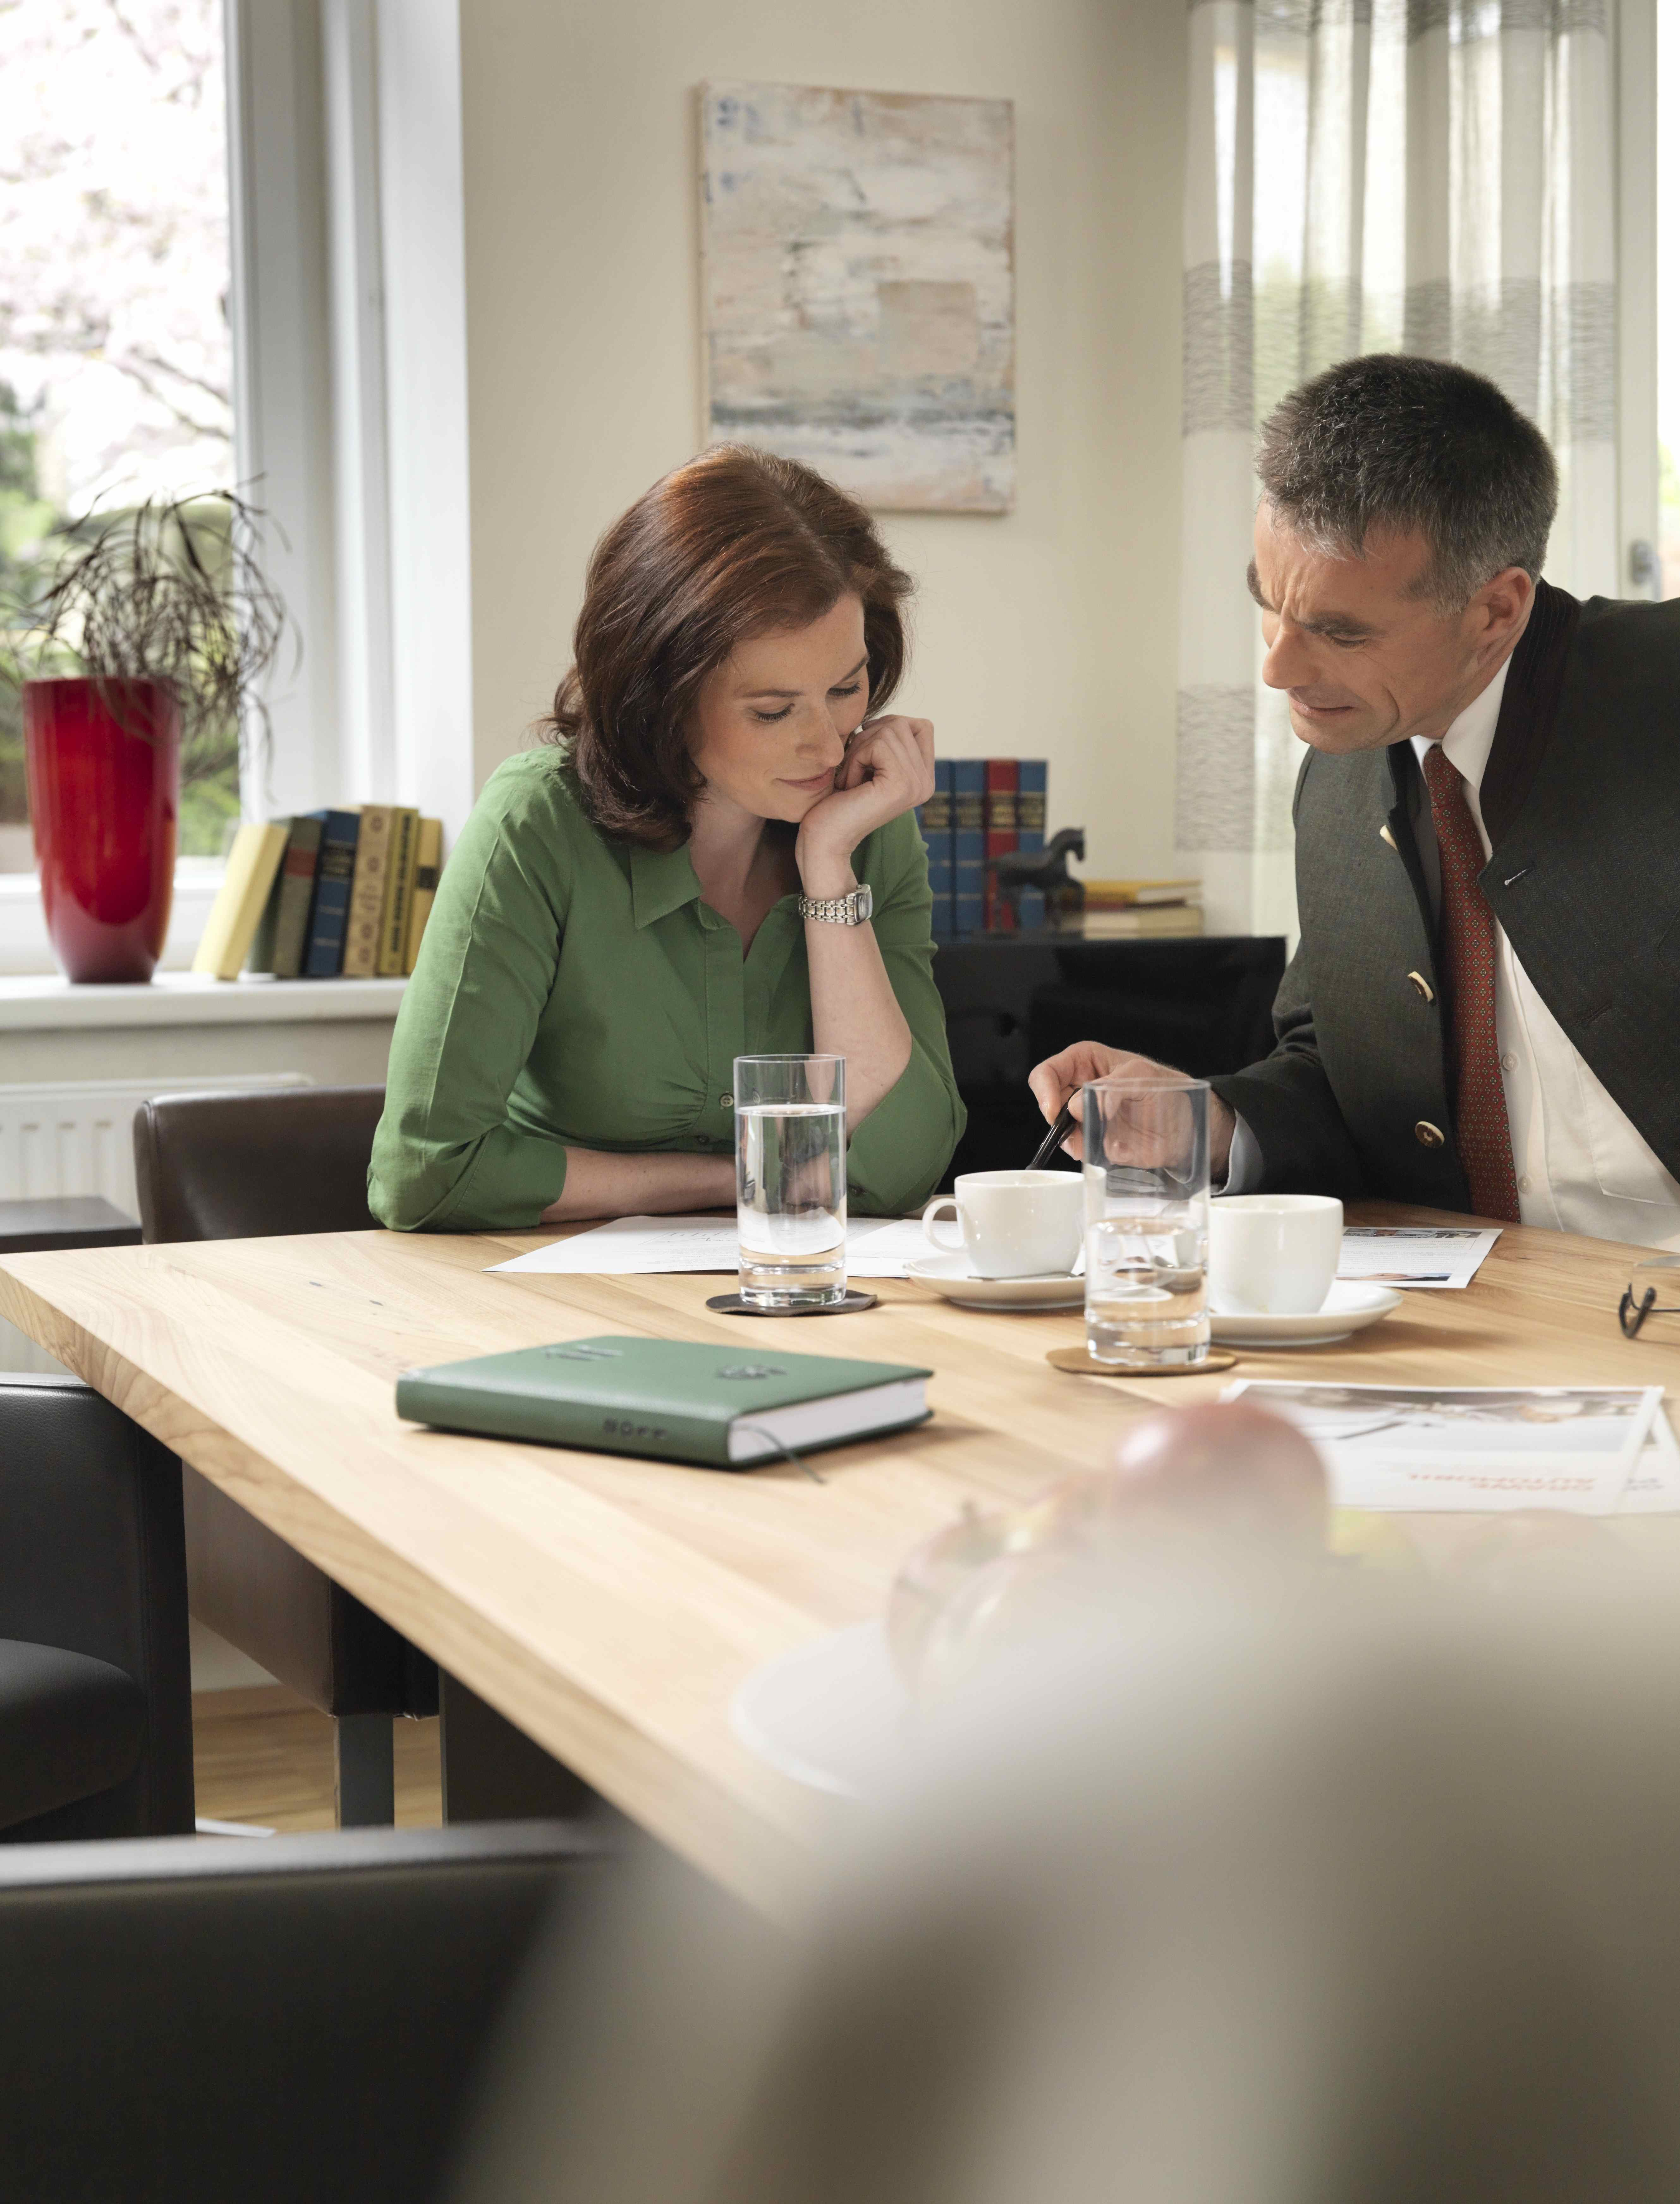 Insurance broker consulting a woman